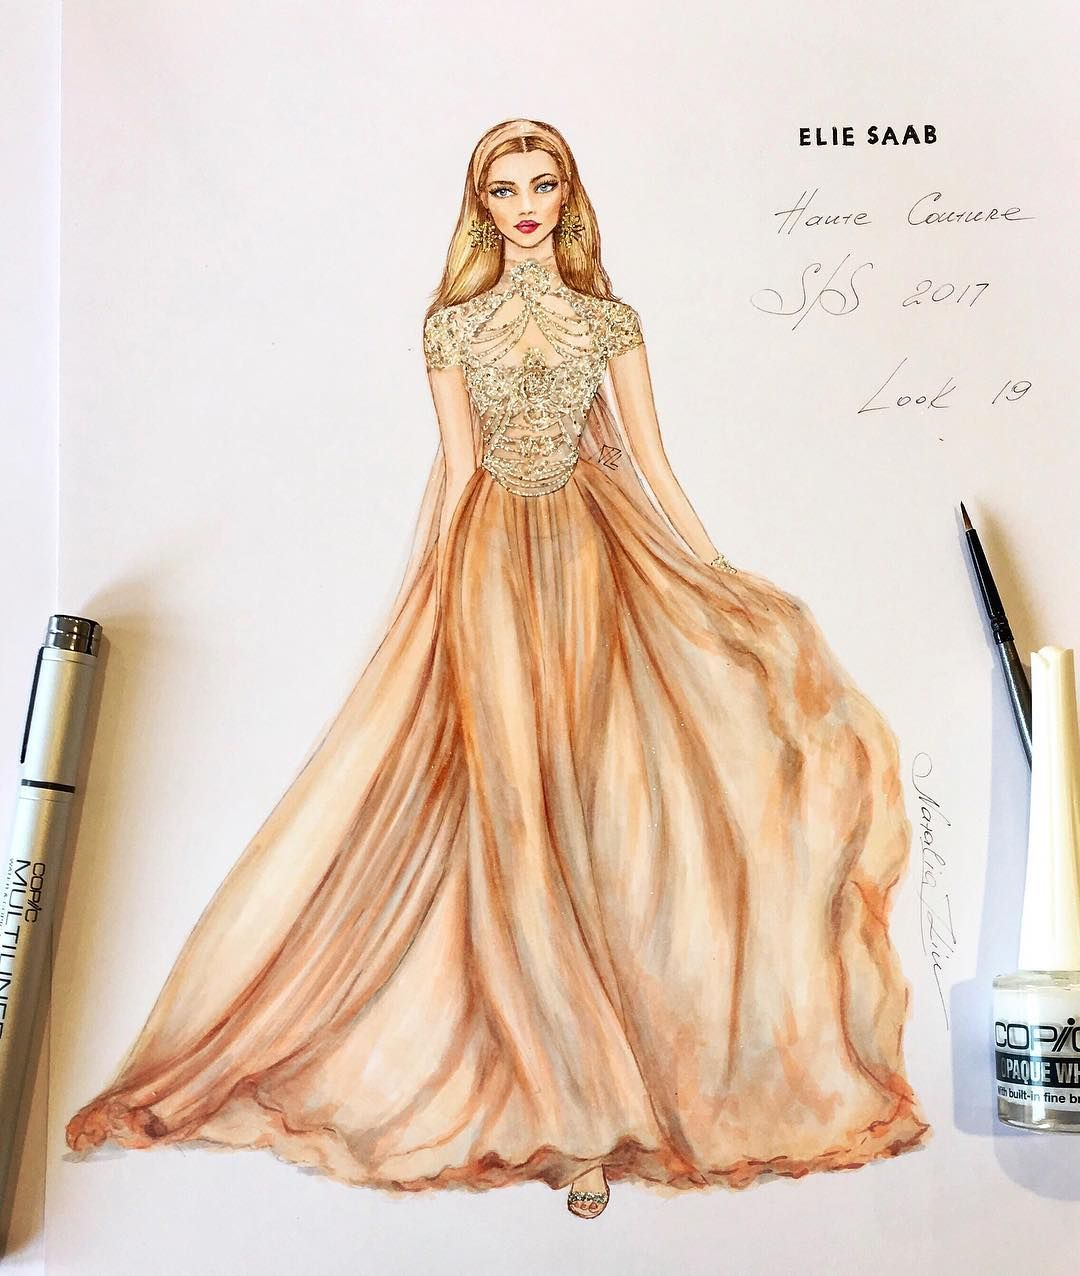 Natalia zorin lou marker sketch of elie saab haute for Haute design